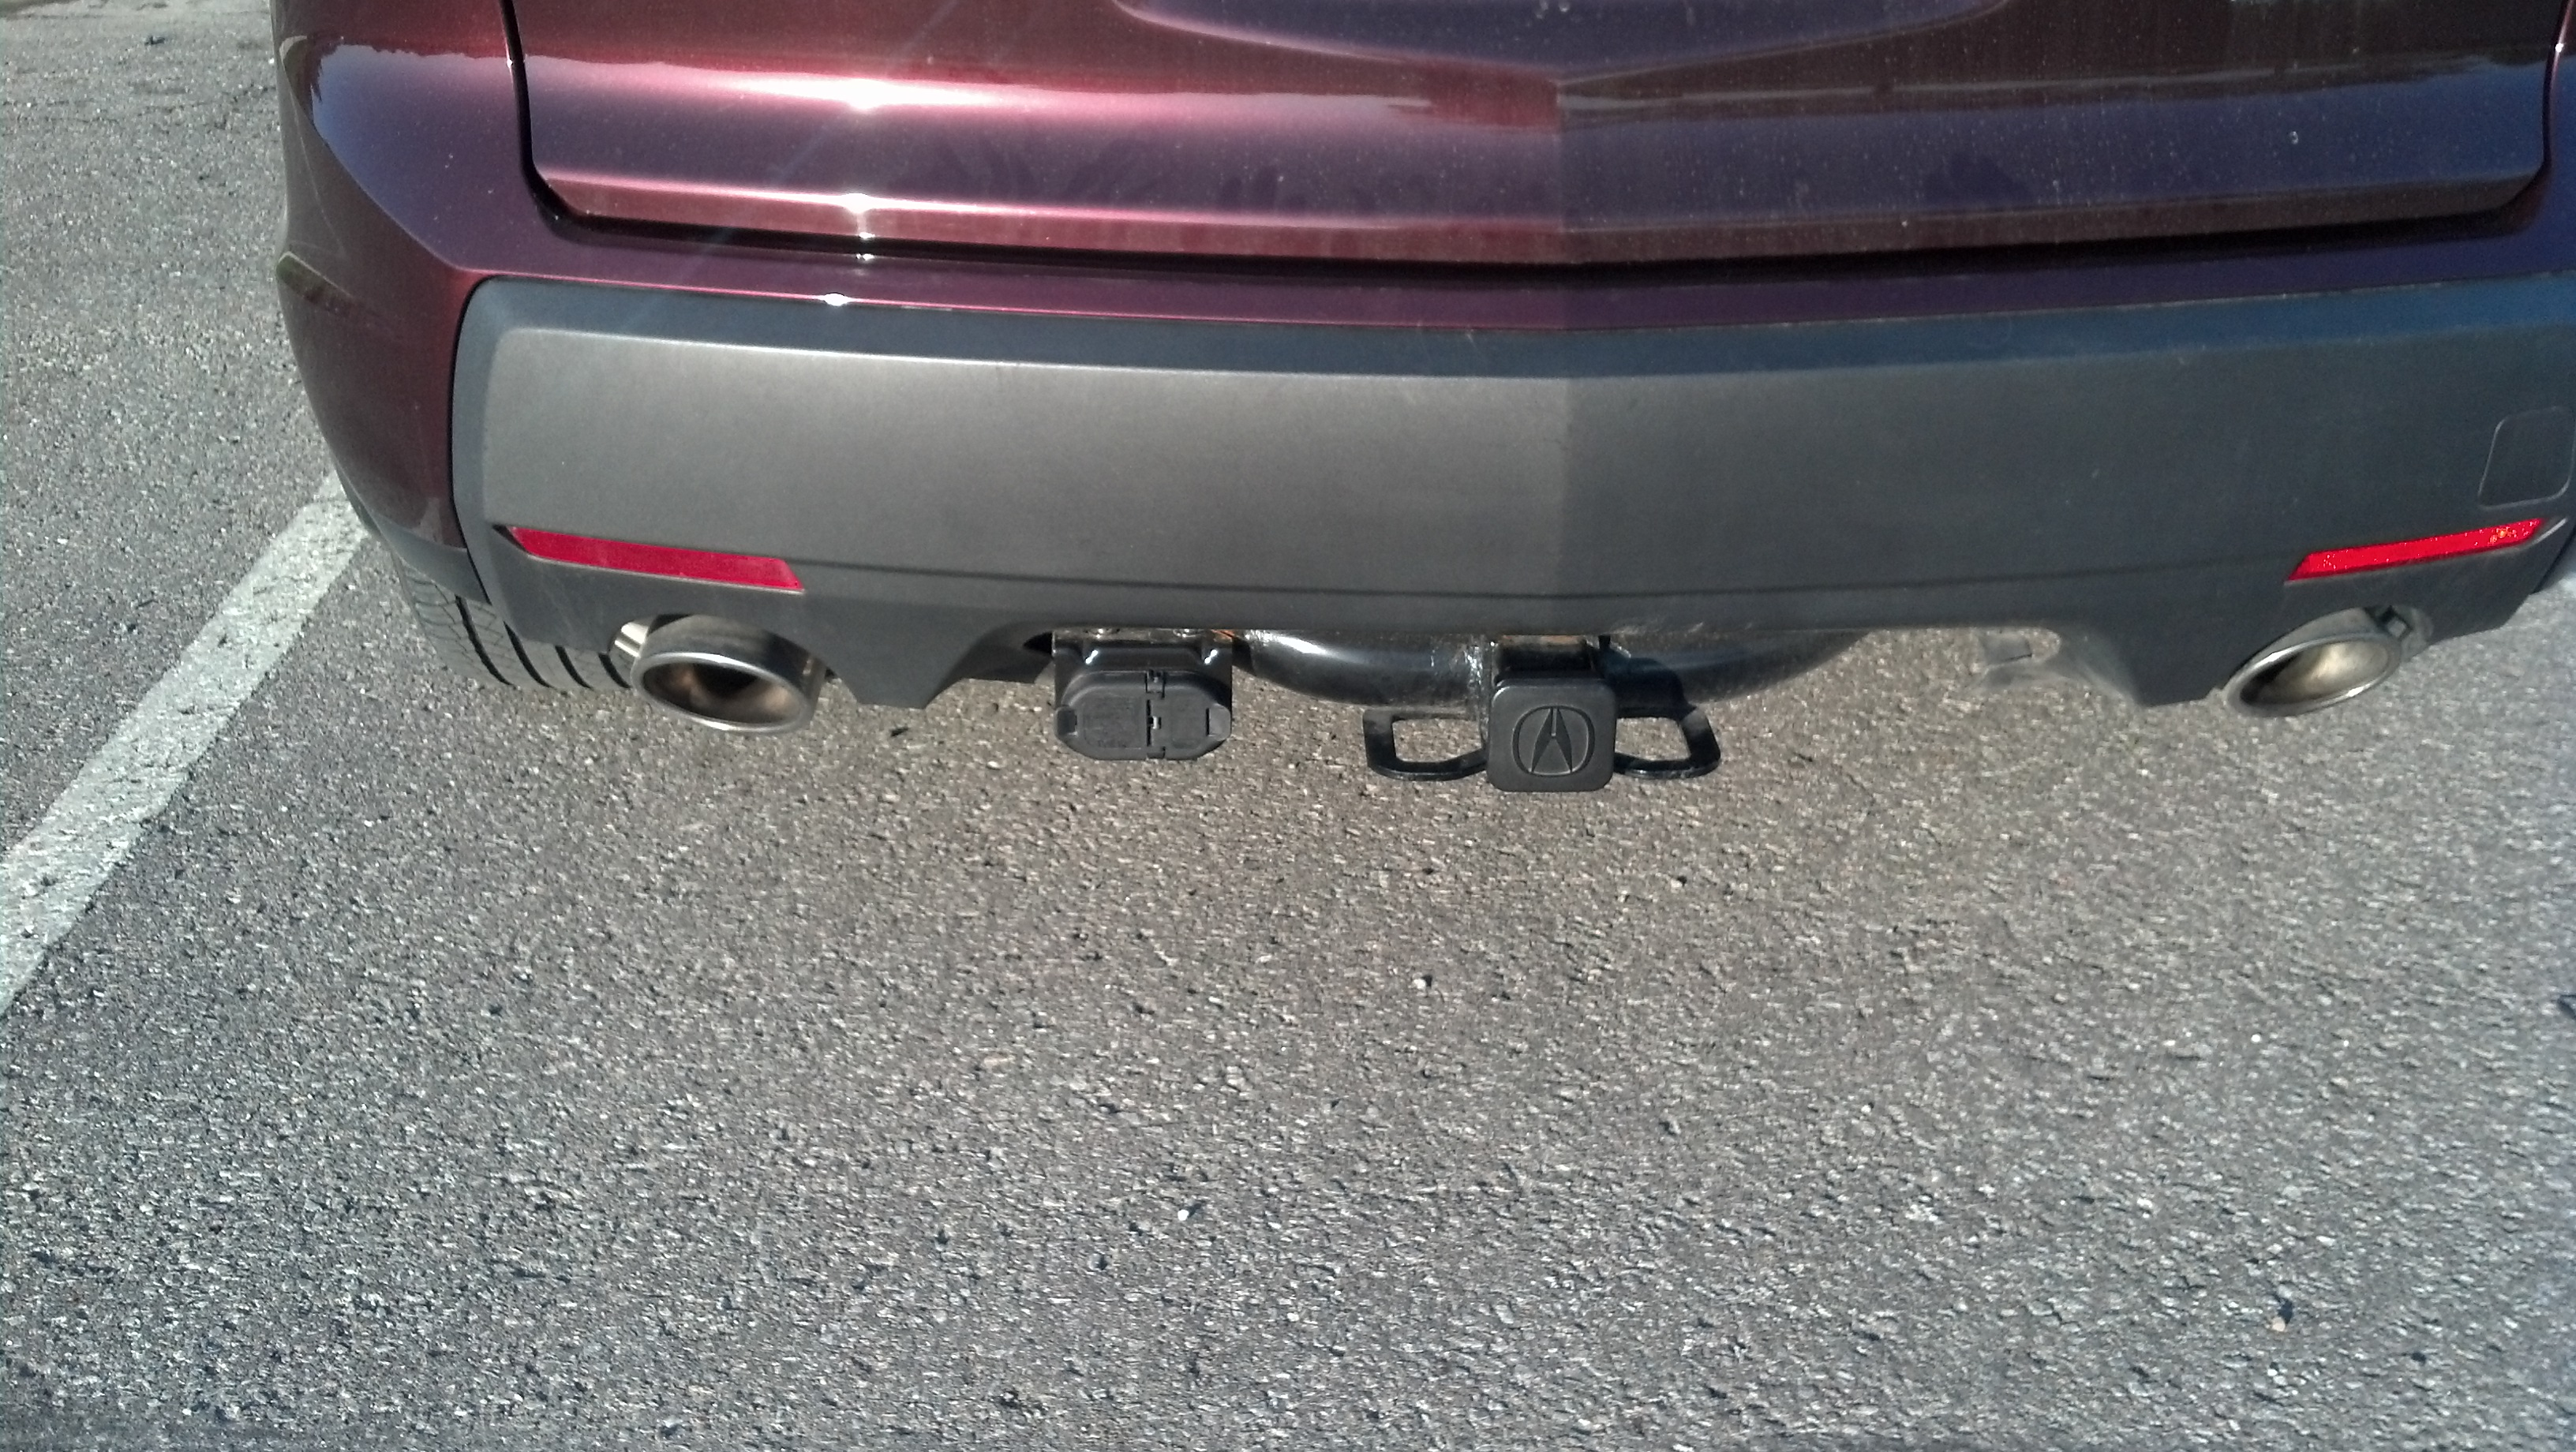 60114d1402076303 oem hitch requires cutting bumper my hitch oem hitch requires cutting bumper? page 2 acura mdx forum